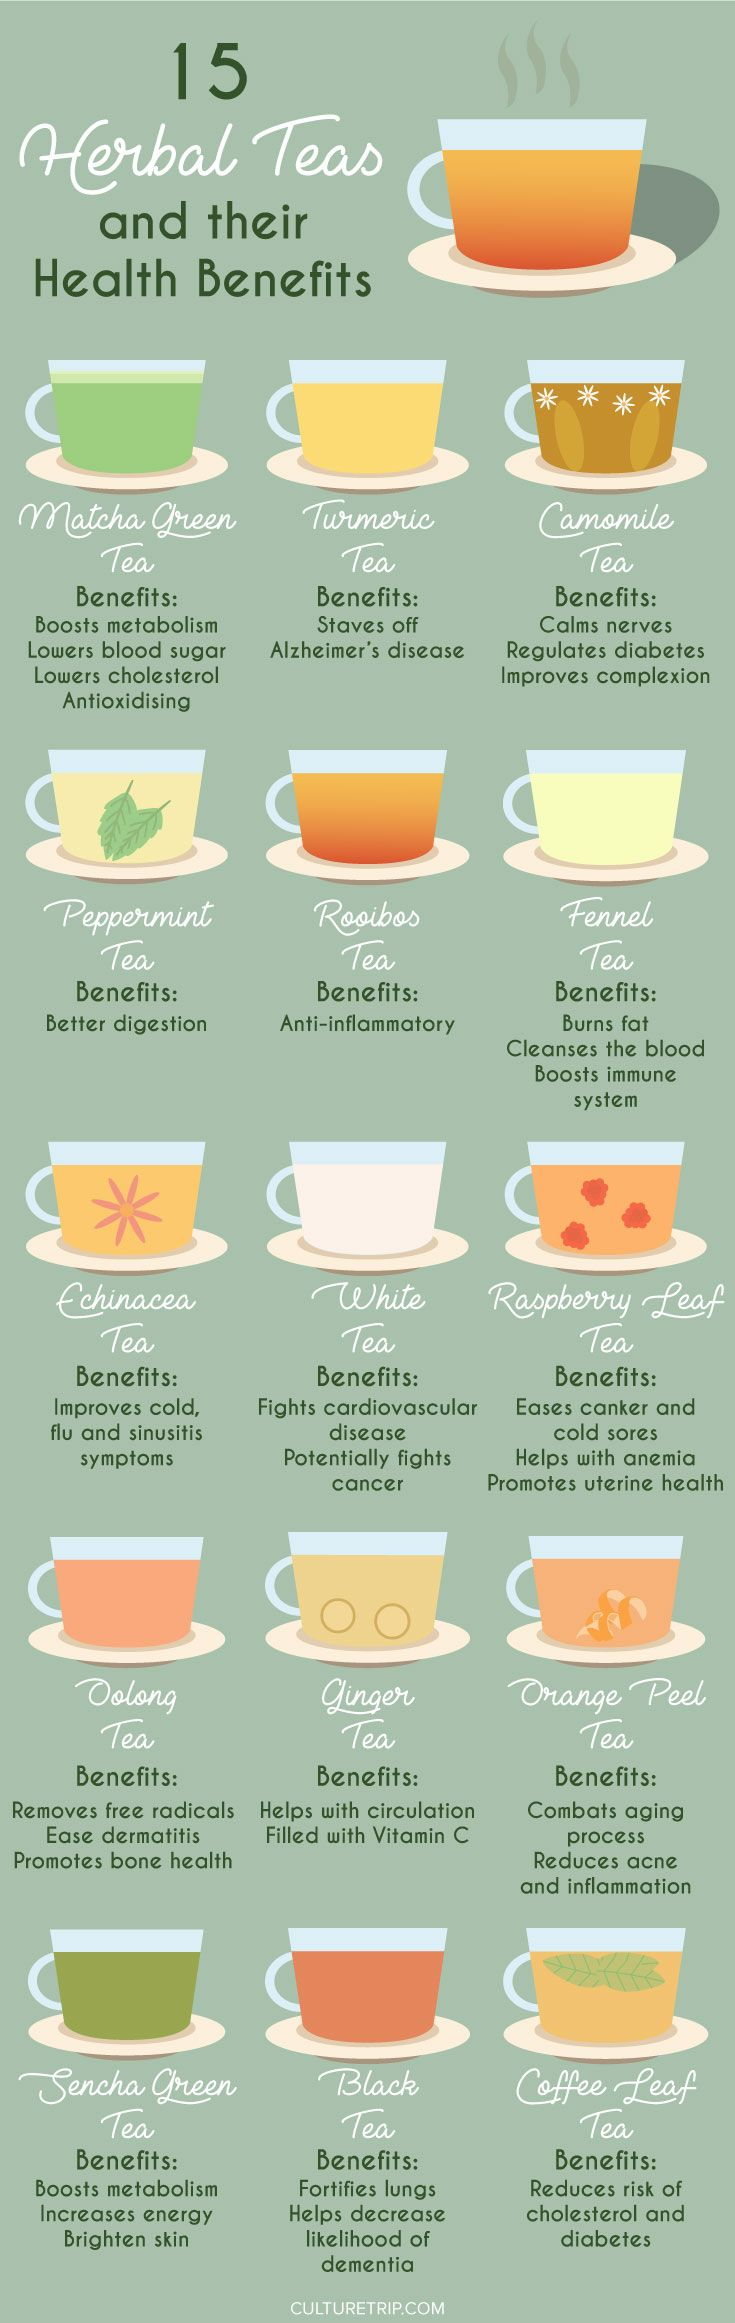 15 Herbal Teas and Their Health Benefits|Pinterest: @theculturetrip